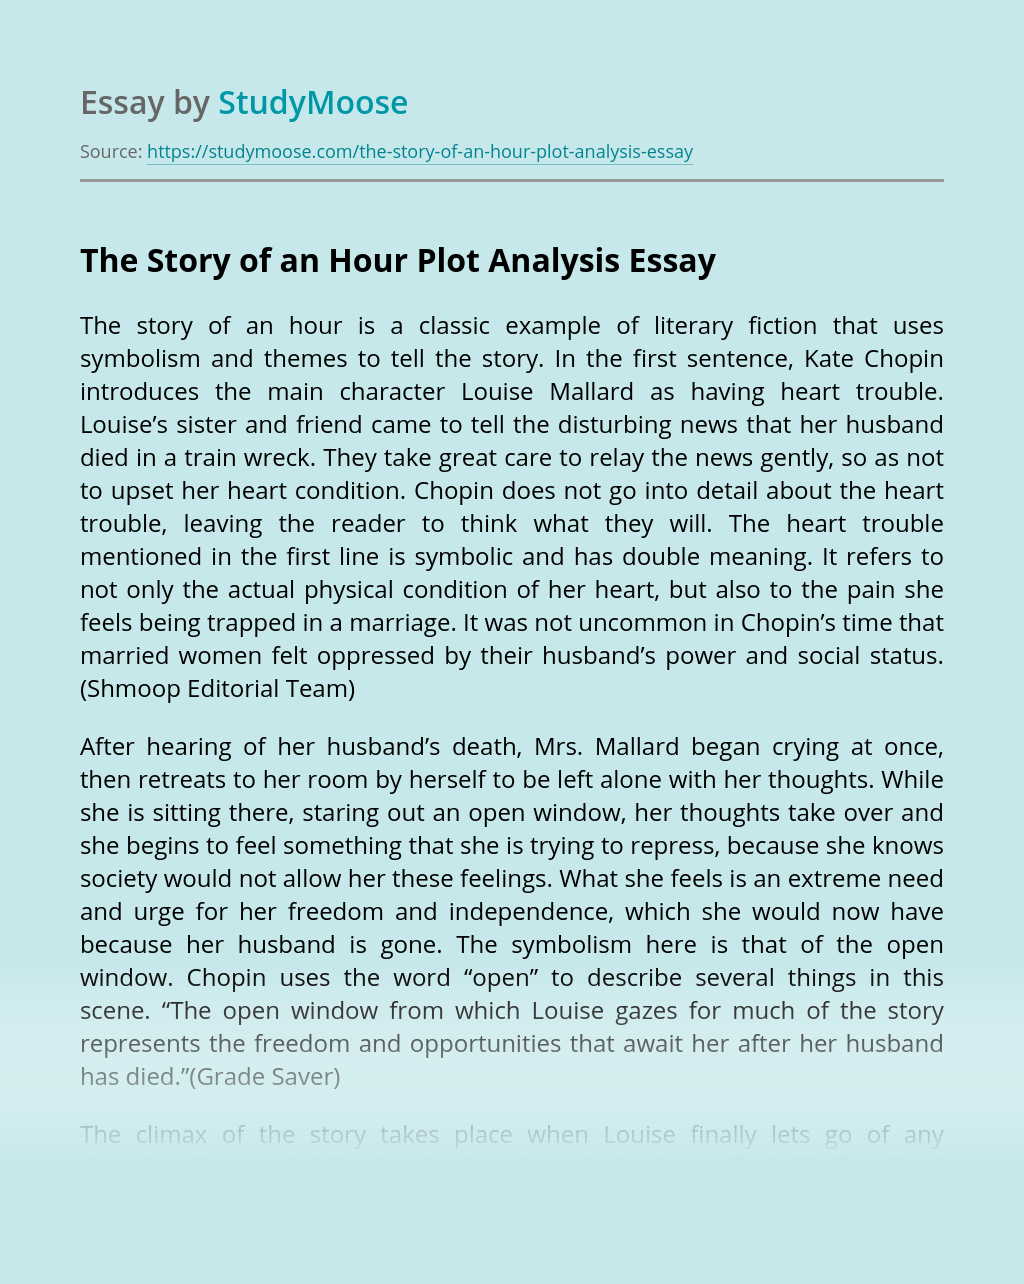 The Story of an Hour Plot Analysis